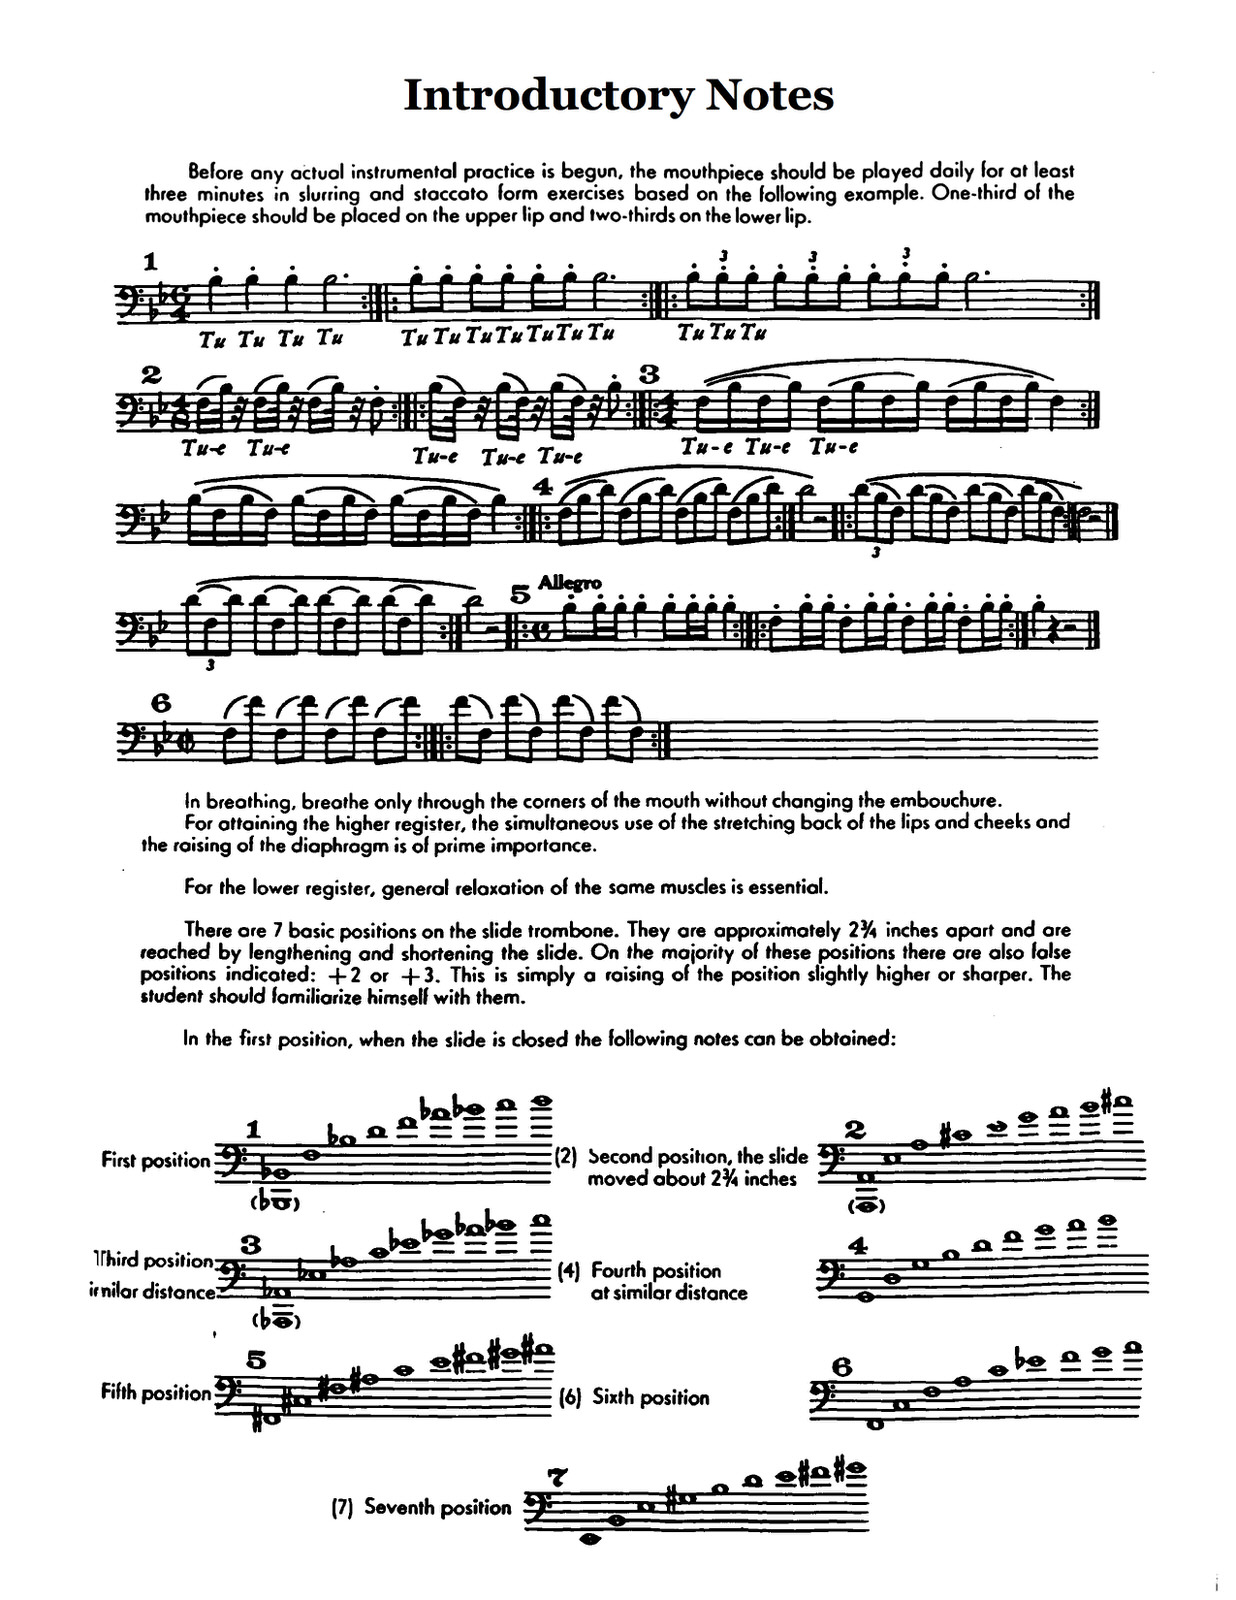 Schlossberg, Daily Drills and Technical Exercises for Trombone 3